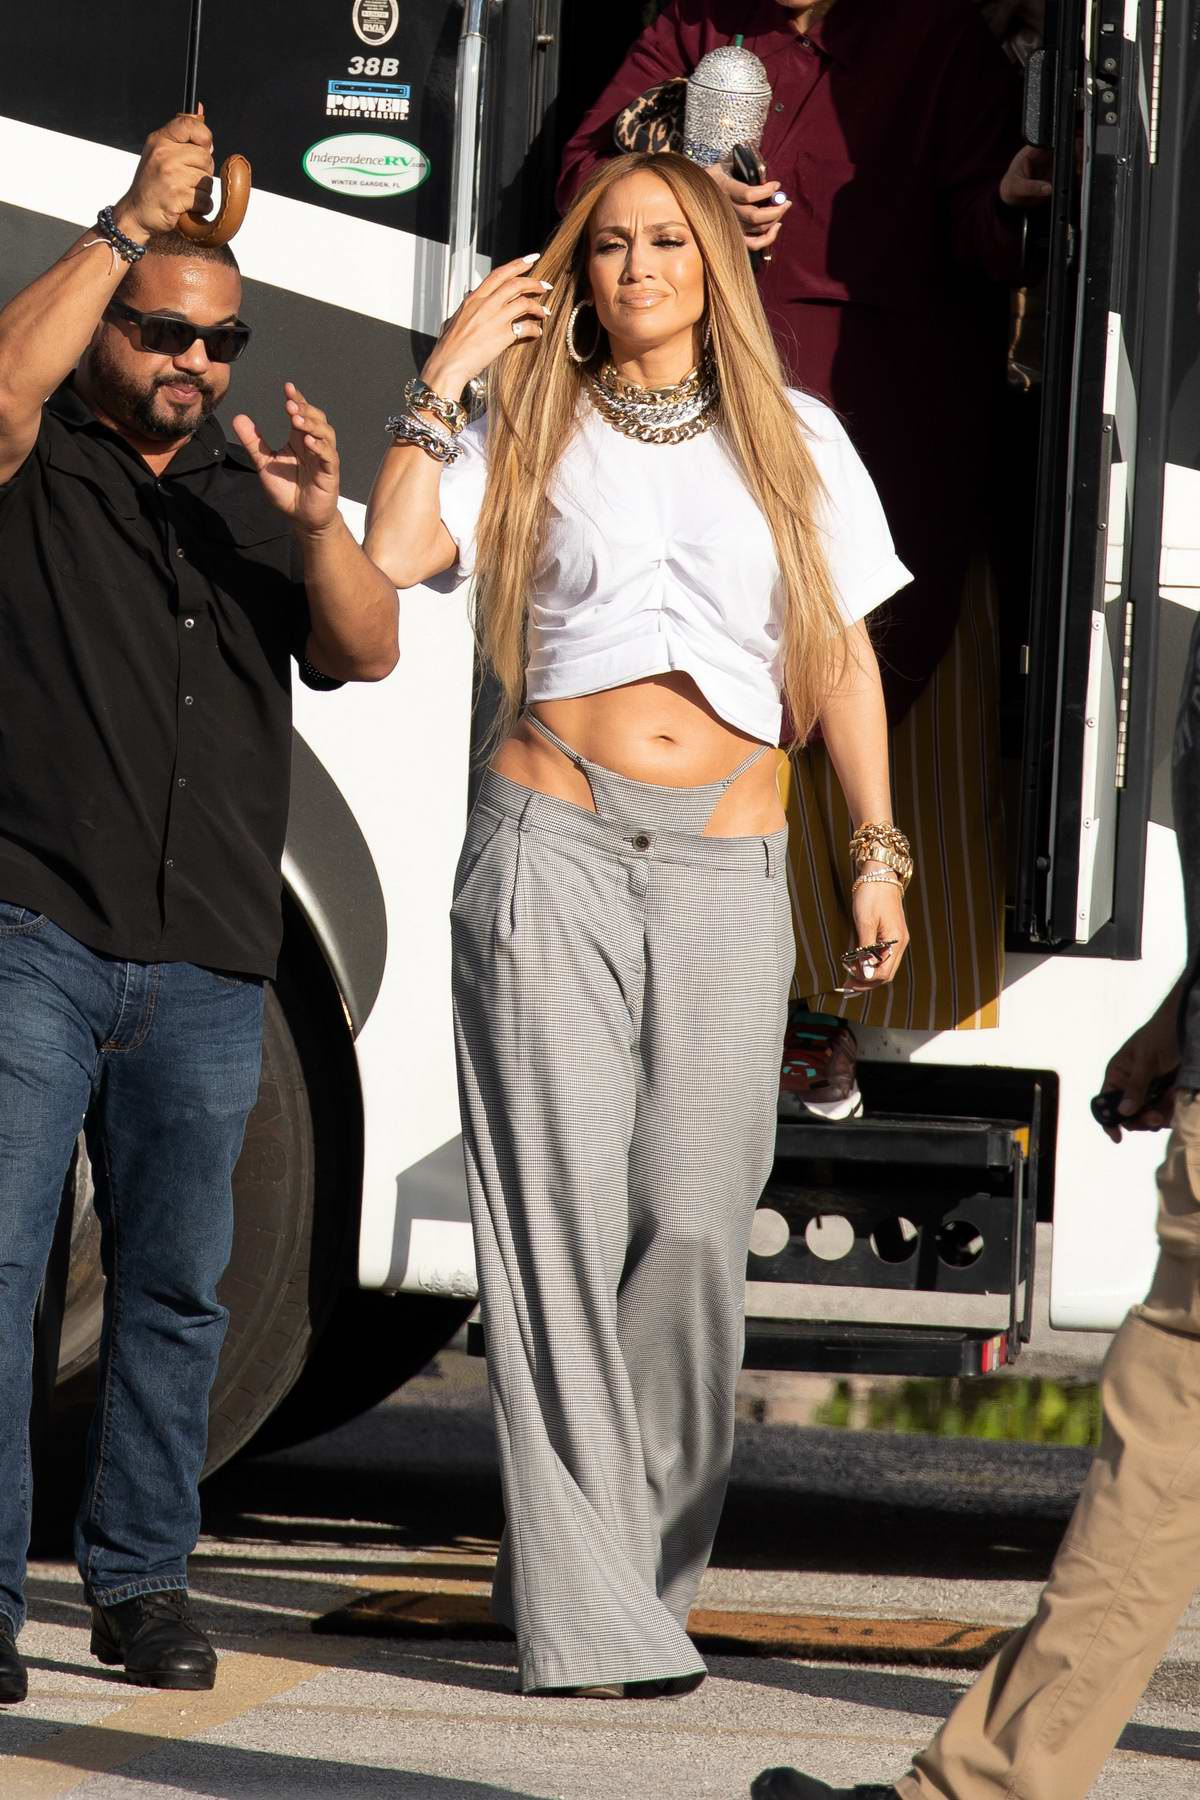 Jennifer Lopez flaunts her toned midriff in a crop top and low hung pants while on the set of a video shoot with DJ Khaled in Miami, Florida